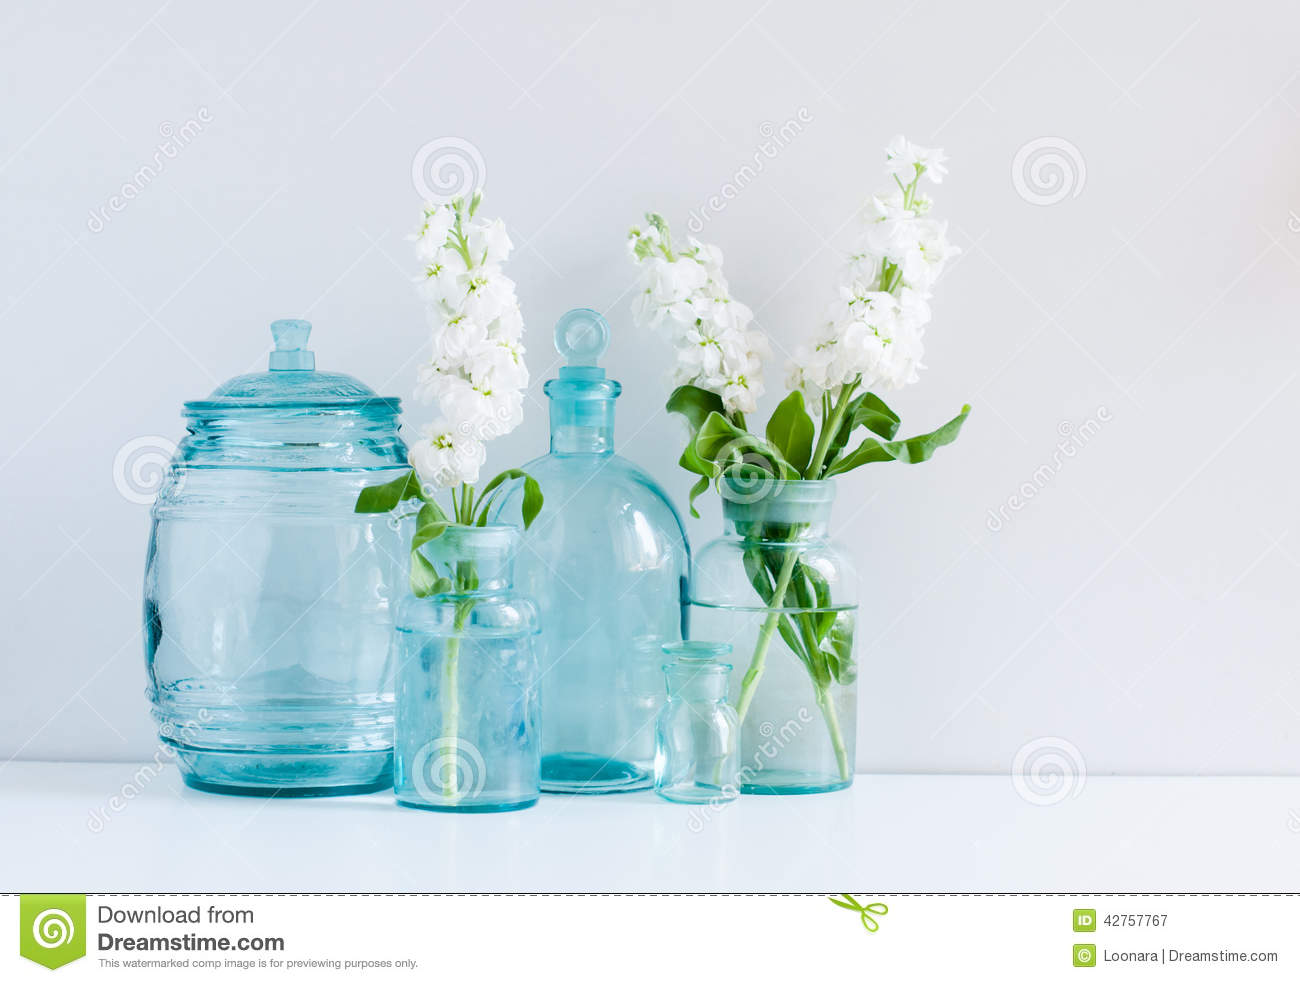 Vintage home decor stock photo image 42757767 - Designs in glasses for house decoration ...